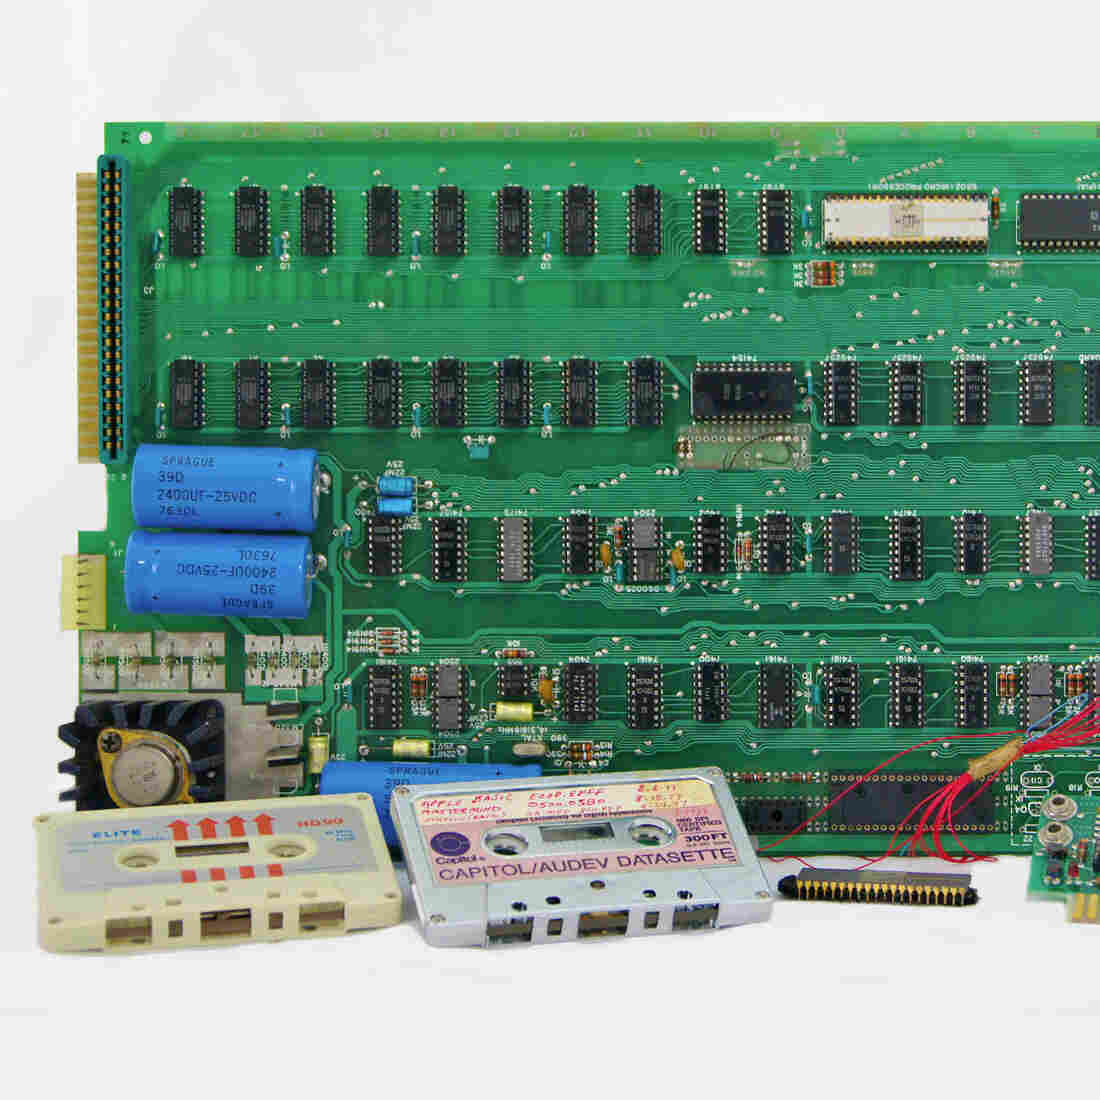 Apple-1 Computer Fetches $671,000 At Auction